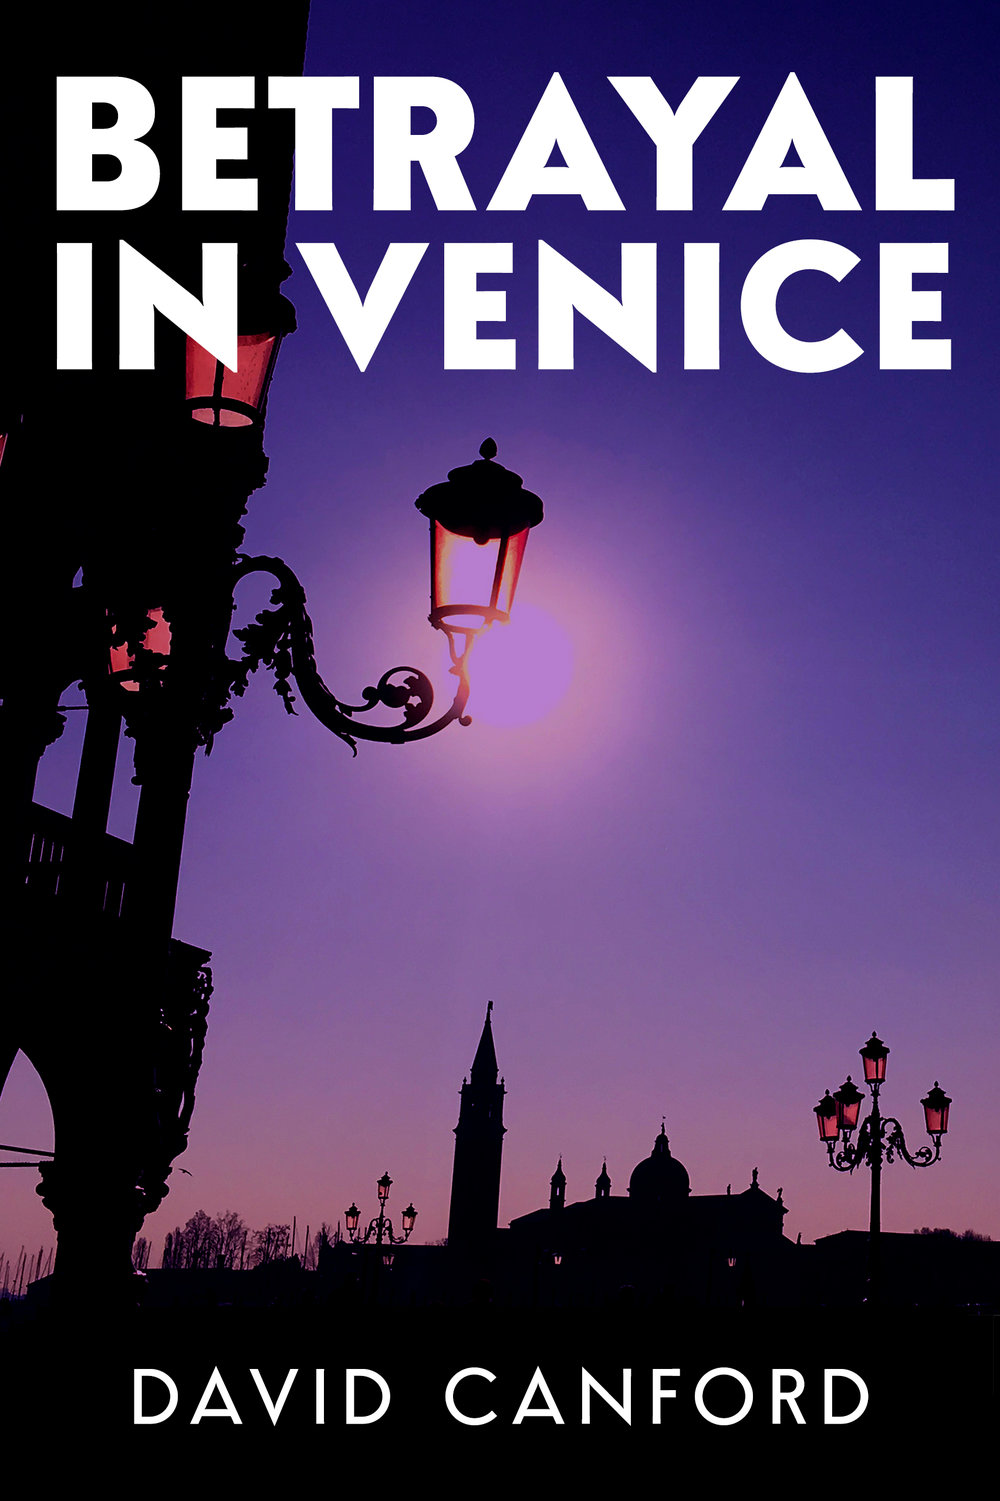 Betrayal-In-Venice_DavidCanford.jpg